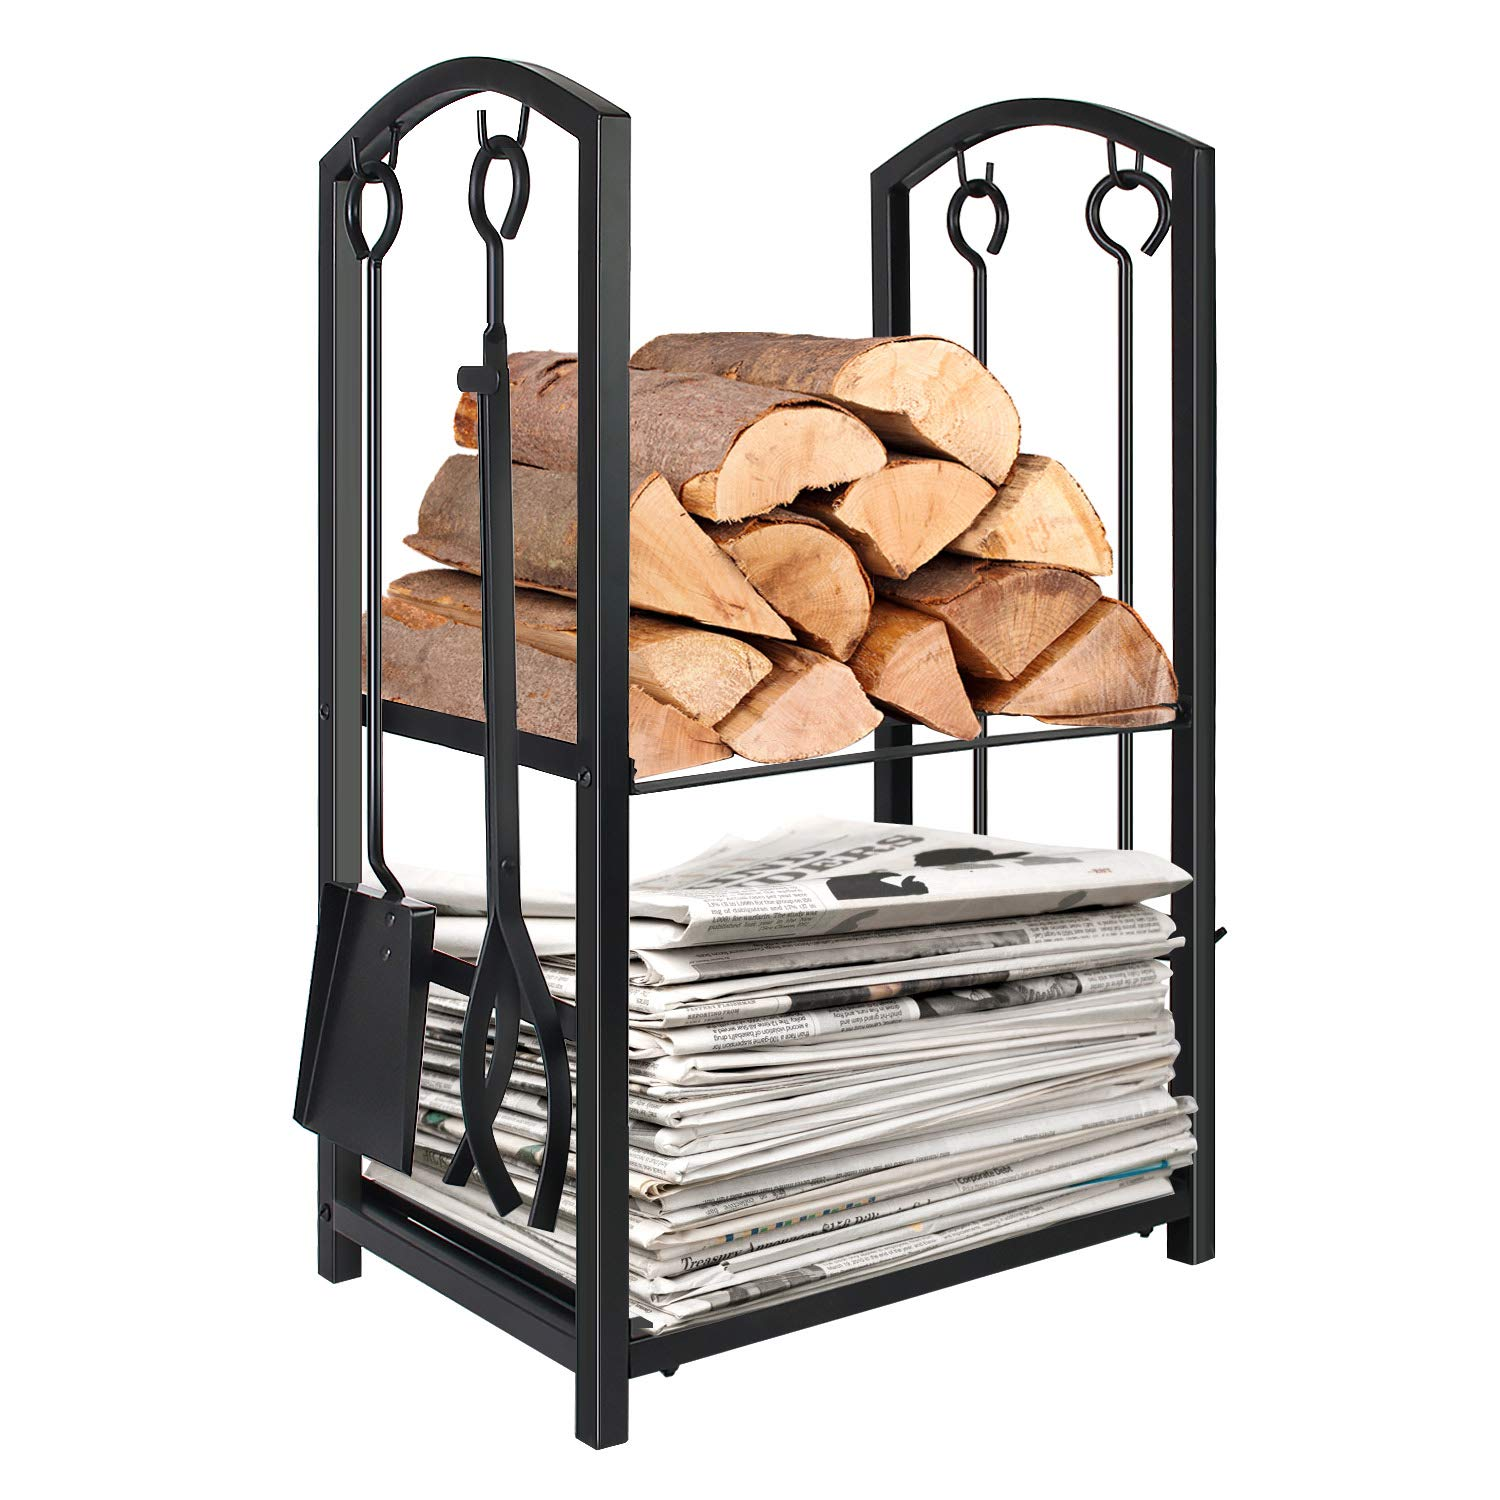 WBHome Firewood Rack with 4 Tools - Iron Fire Log Holder Storage Set Includes Brush, Shovel, Poker, and Tongs, 17 x 29 x 12 inches, for Indoor/Outdoor by WBHome